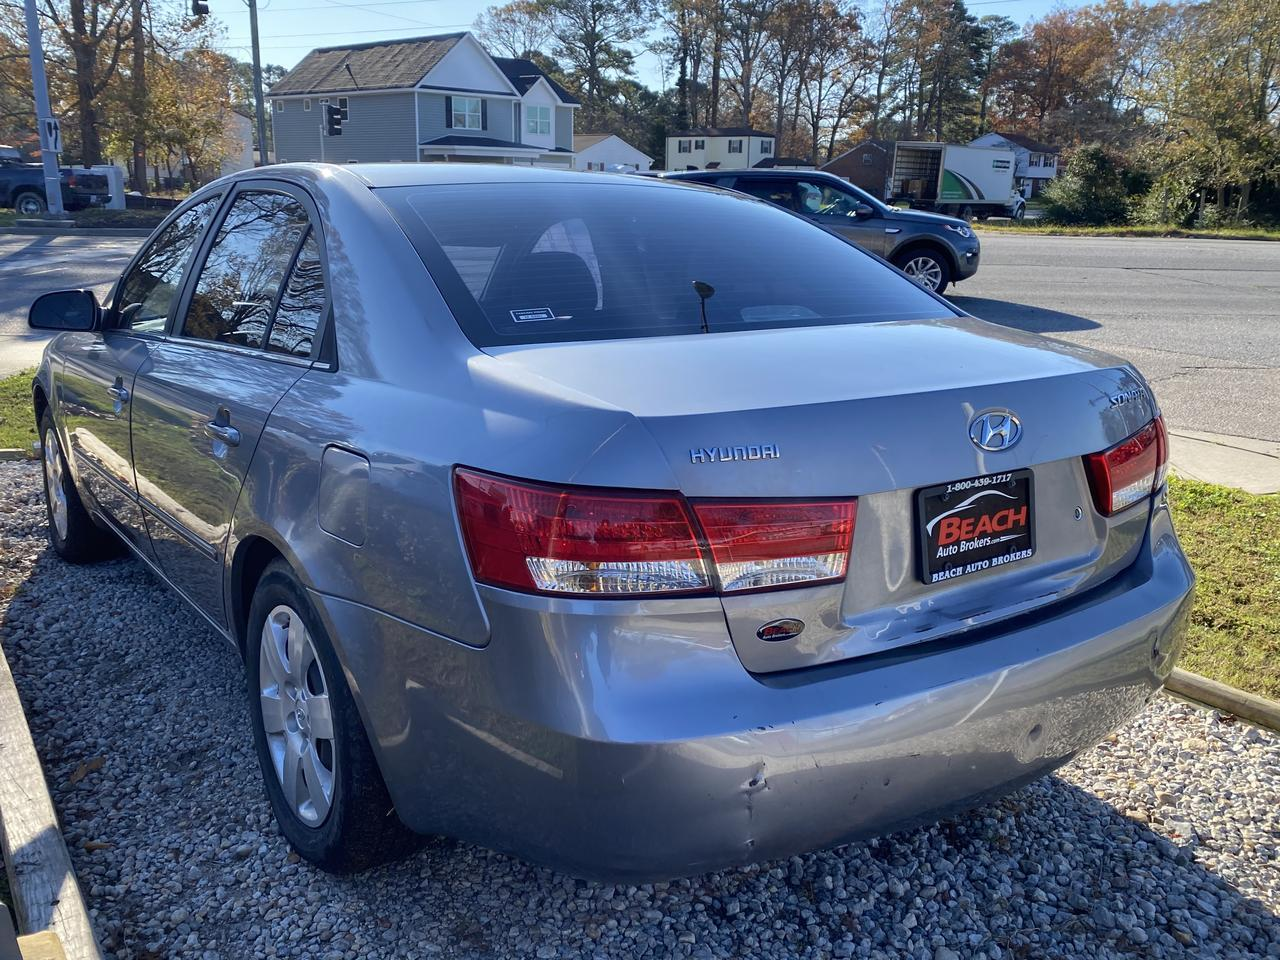 2007 HYUNDAI SONATA GLS, WHOLESALE TO THE PUBLIC, A/C, CD PLAYER, AUX/USB PORT, GET IT BEFORE IT GOES TO AUCTION! Norfolk VA